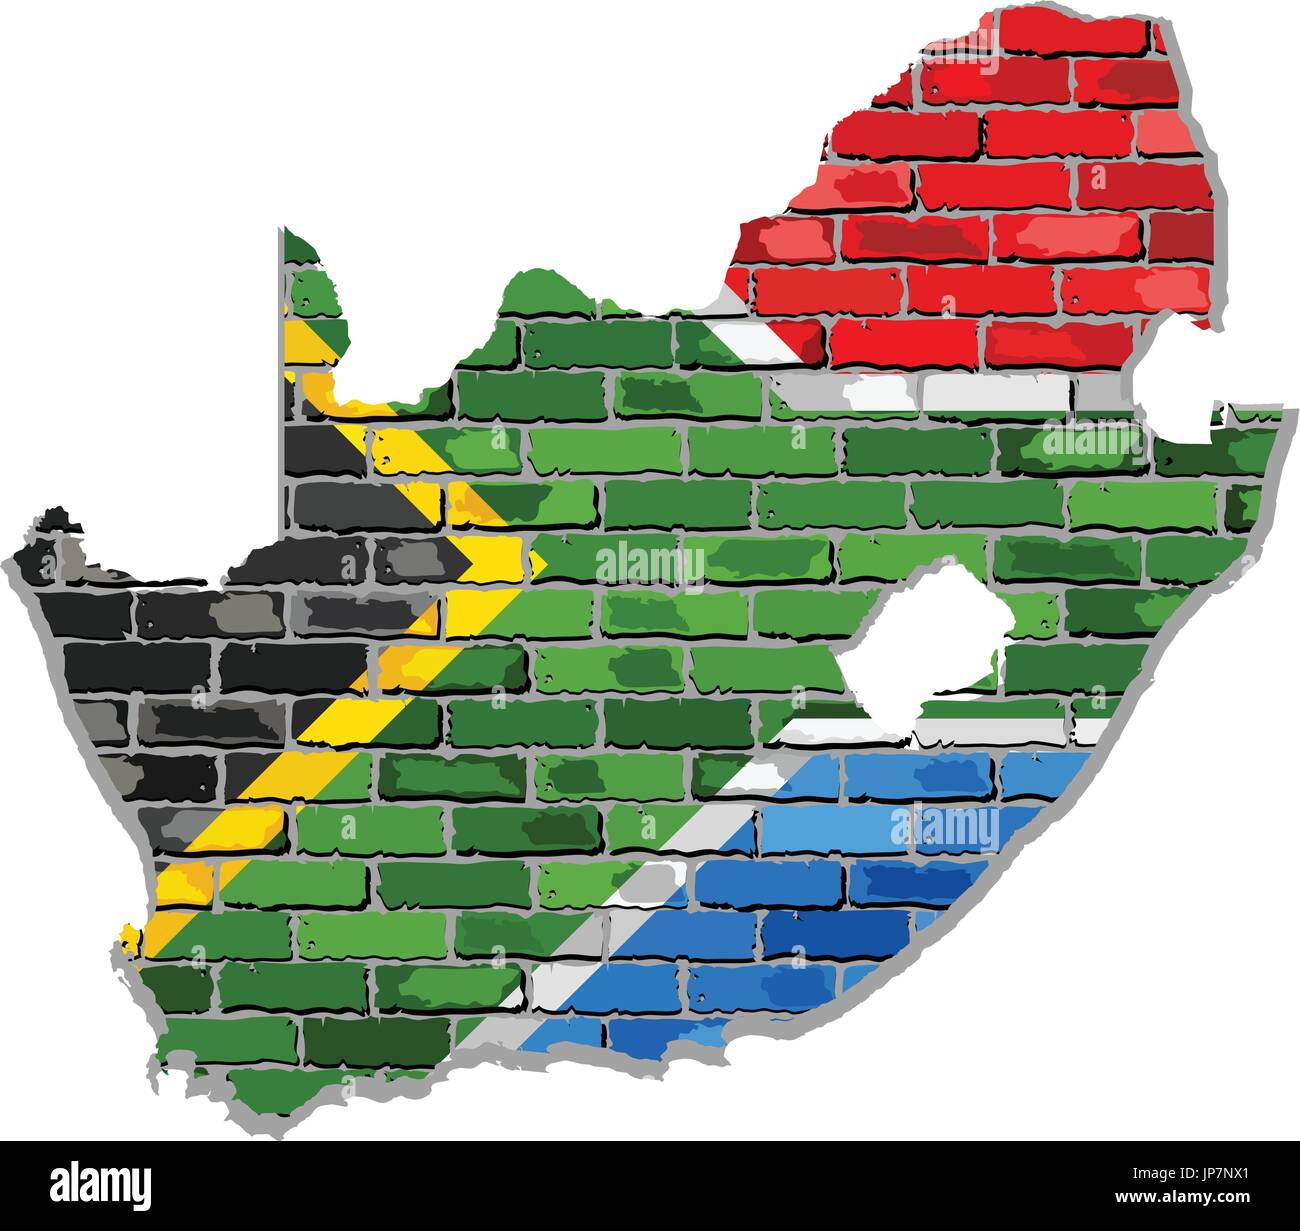 South africa map on a brick wall illustration south africa map south africa map on a brick wall illustration south africa map with flag inside gumiabroncs Choice Image